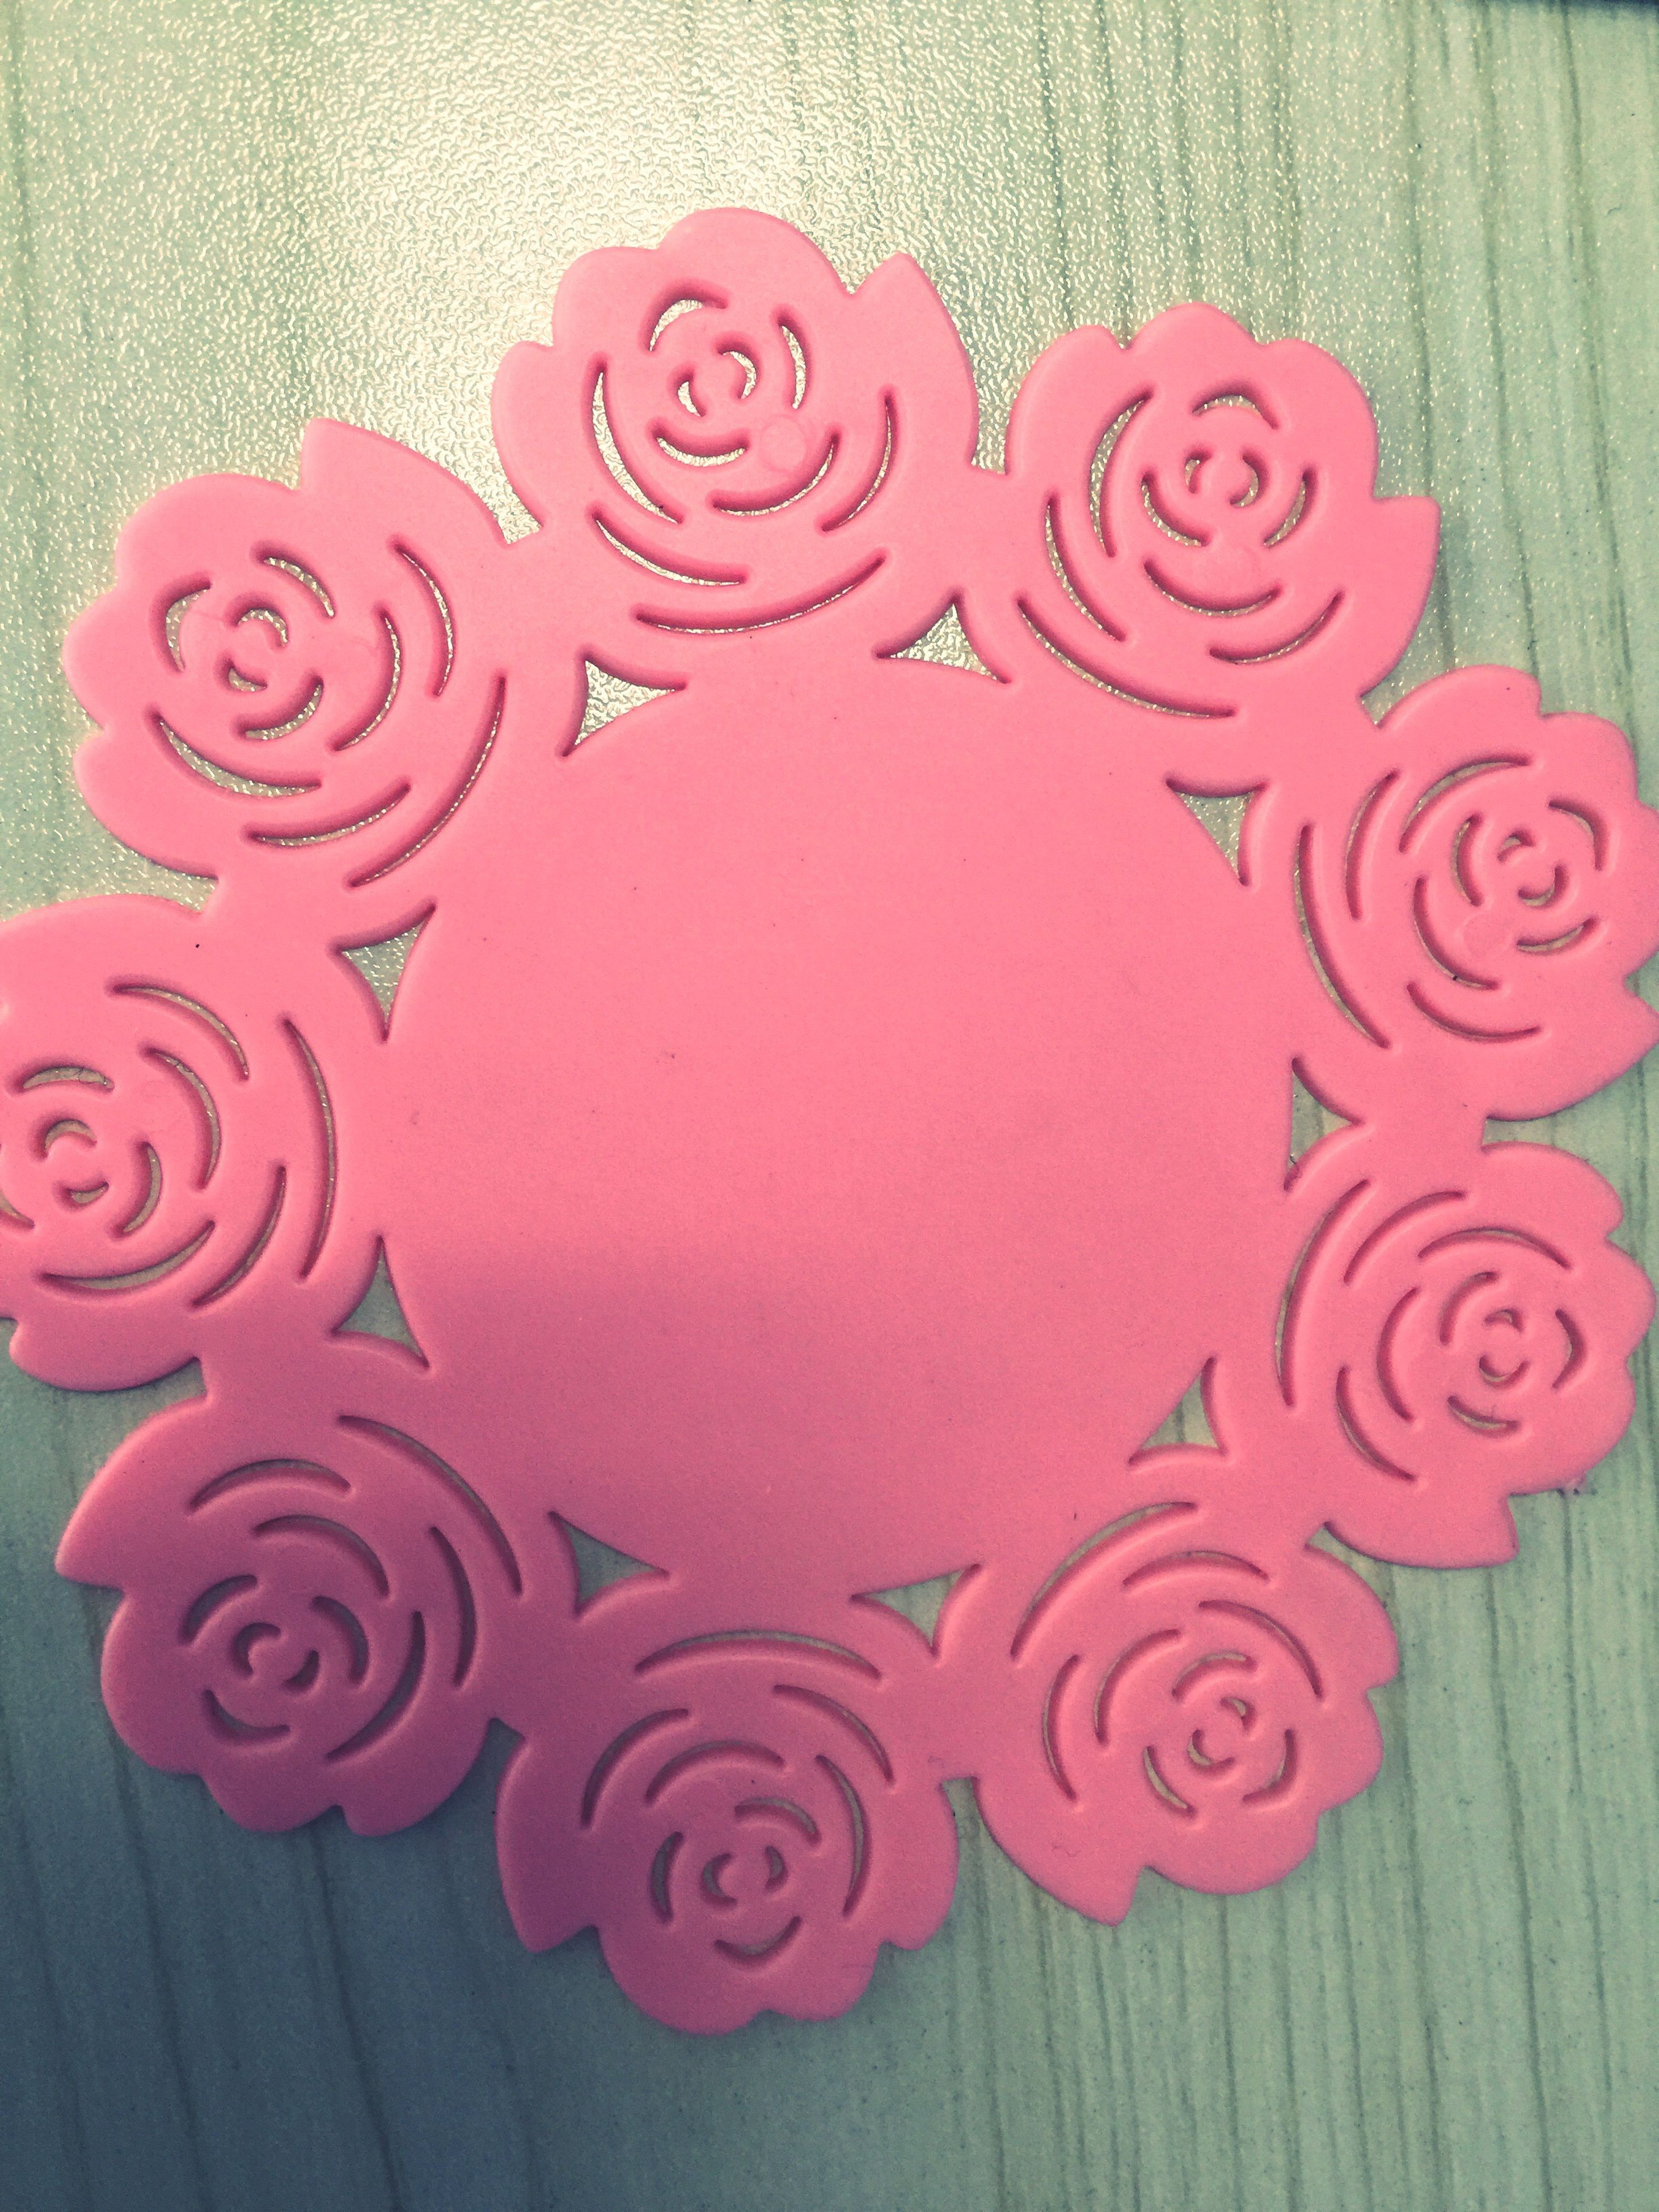 indoors, art and craft, art, creativity, decoration, close-up, flower, human representation, still life, pink color, design, love, rose - flower, heart shape, wall - building feature, no people, floral pattern, ornate, red, multi colored